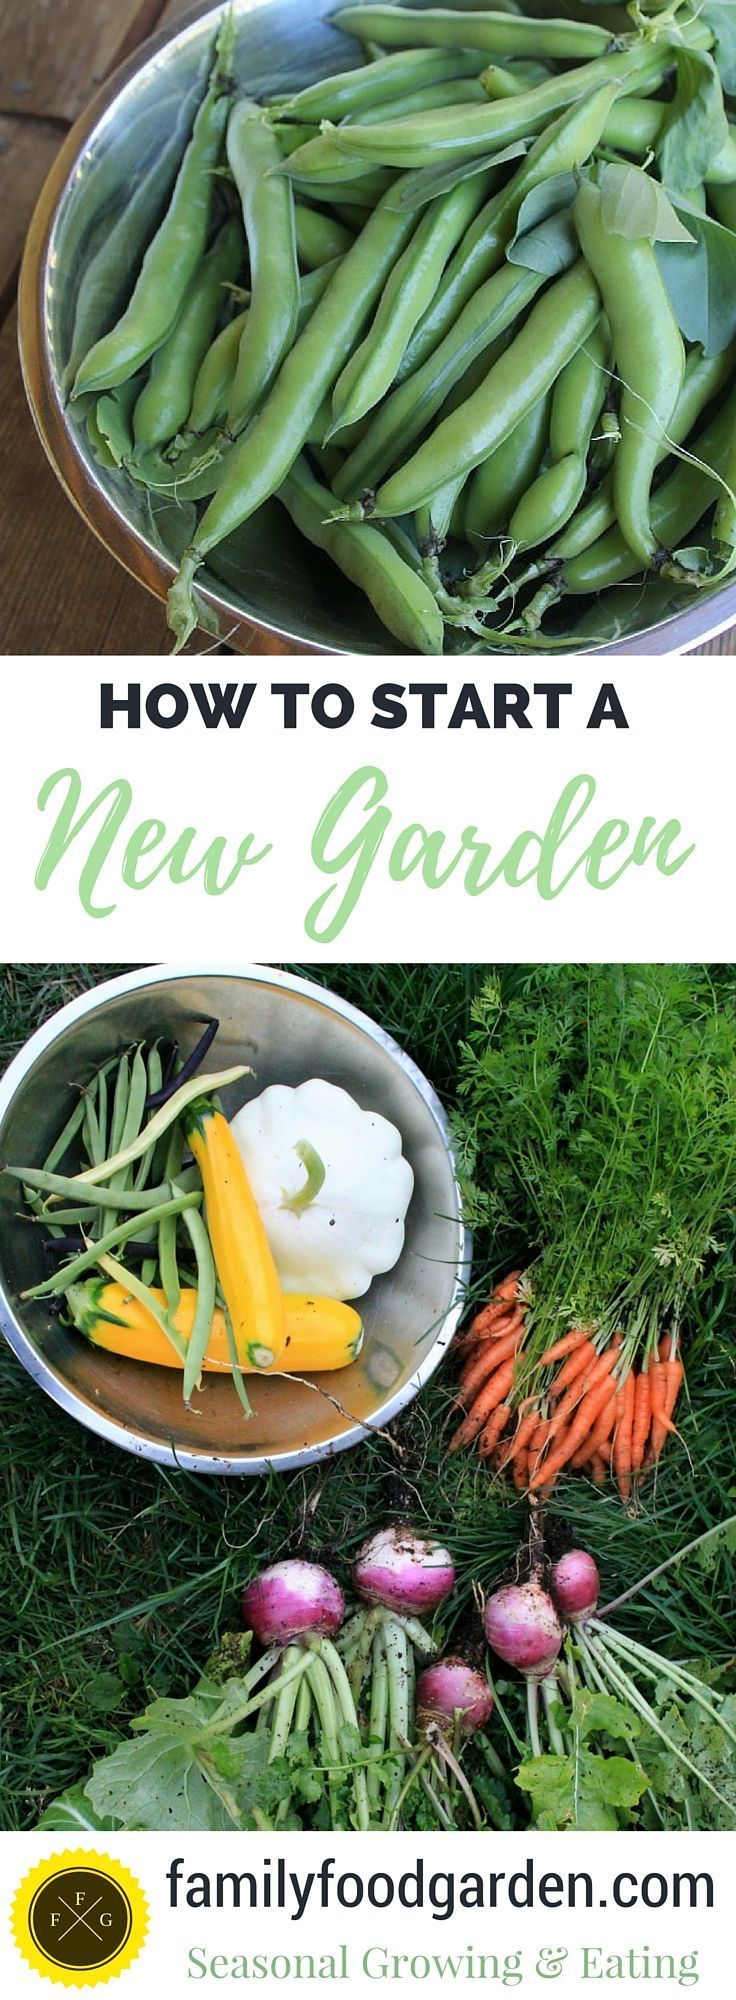 Food garden pictures - How To Start A Food Garden